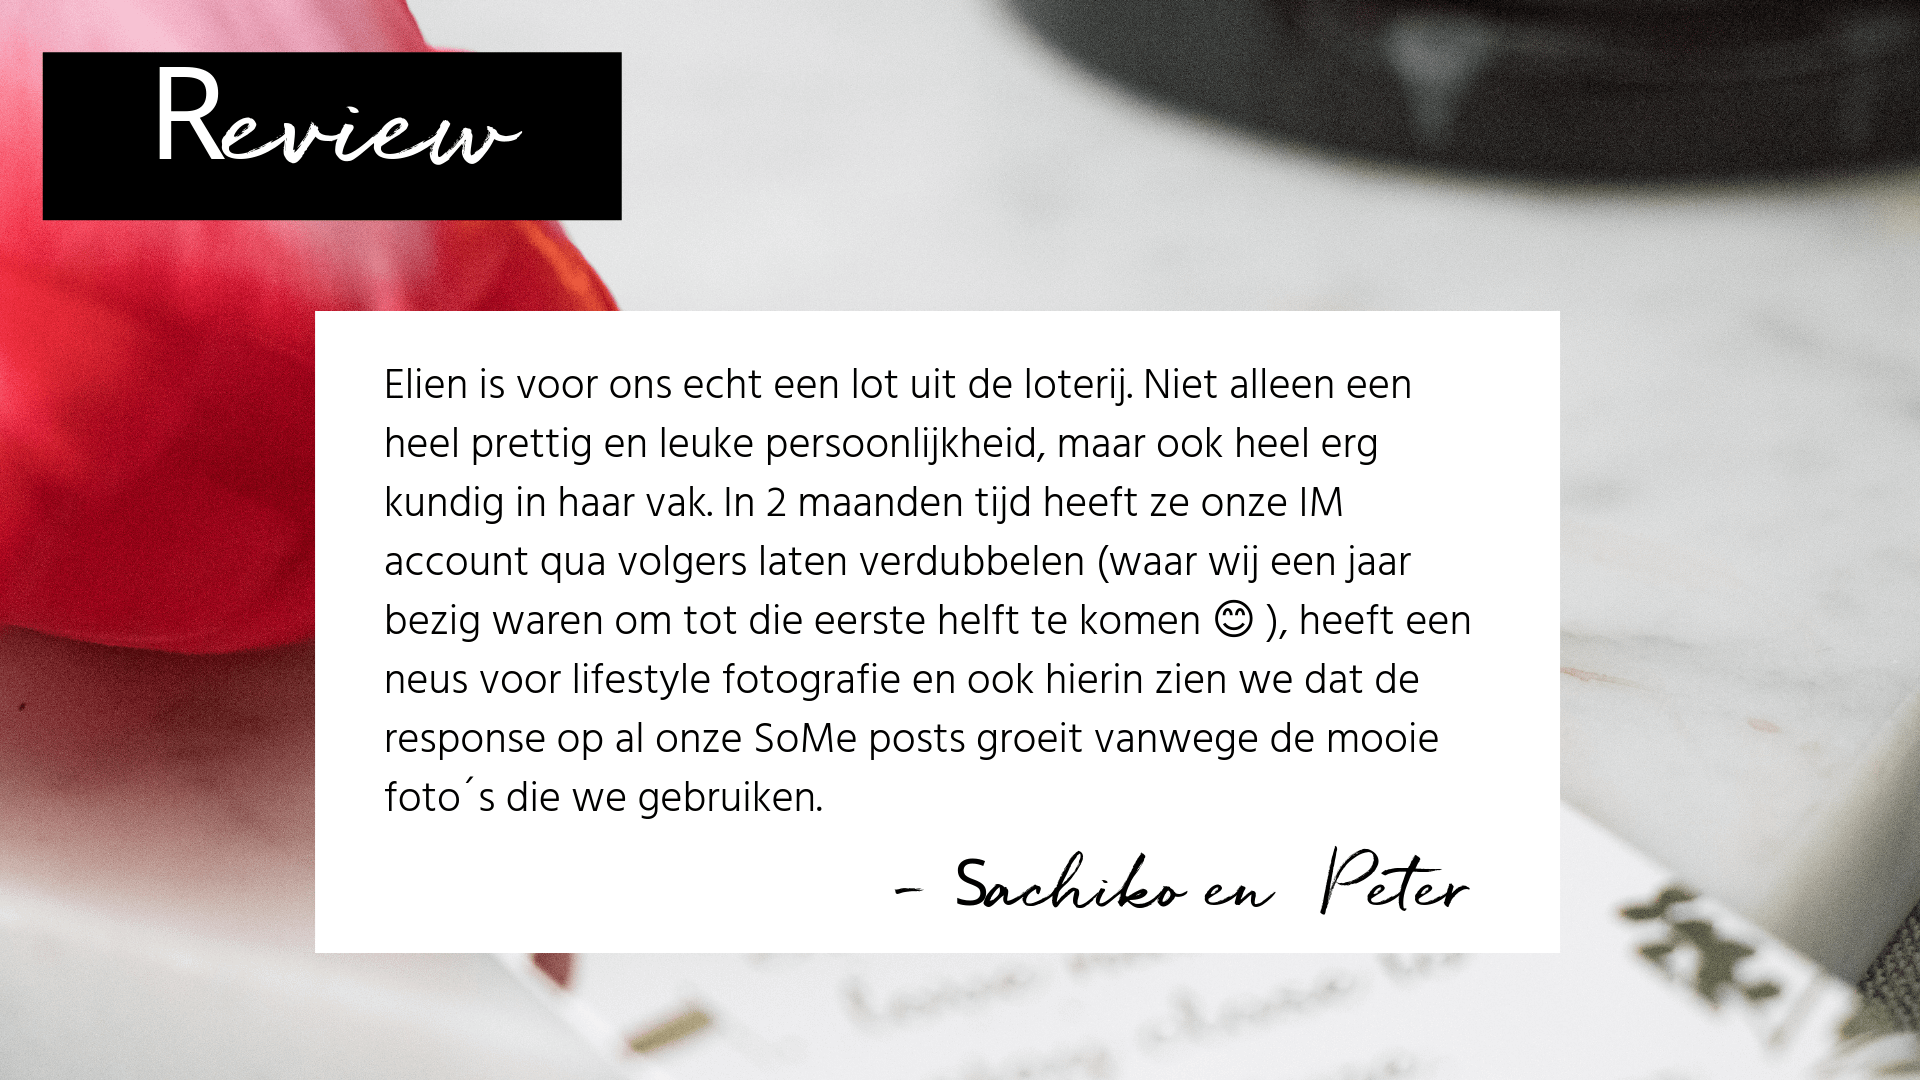 Review tevreden klant online marketing